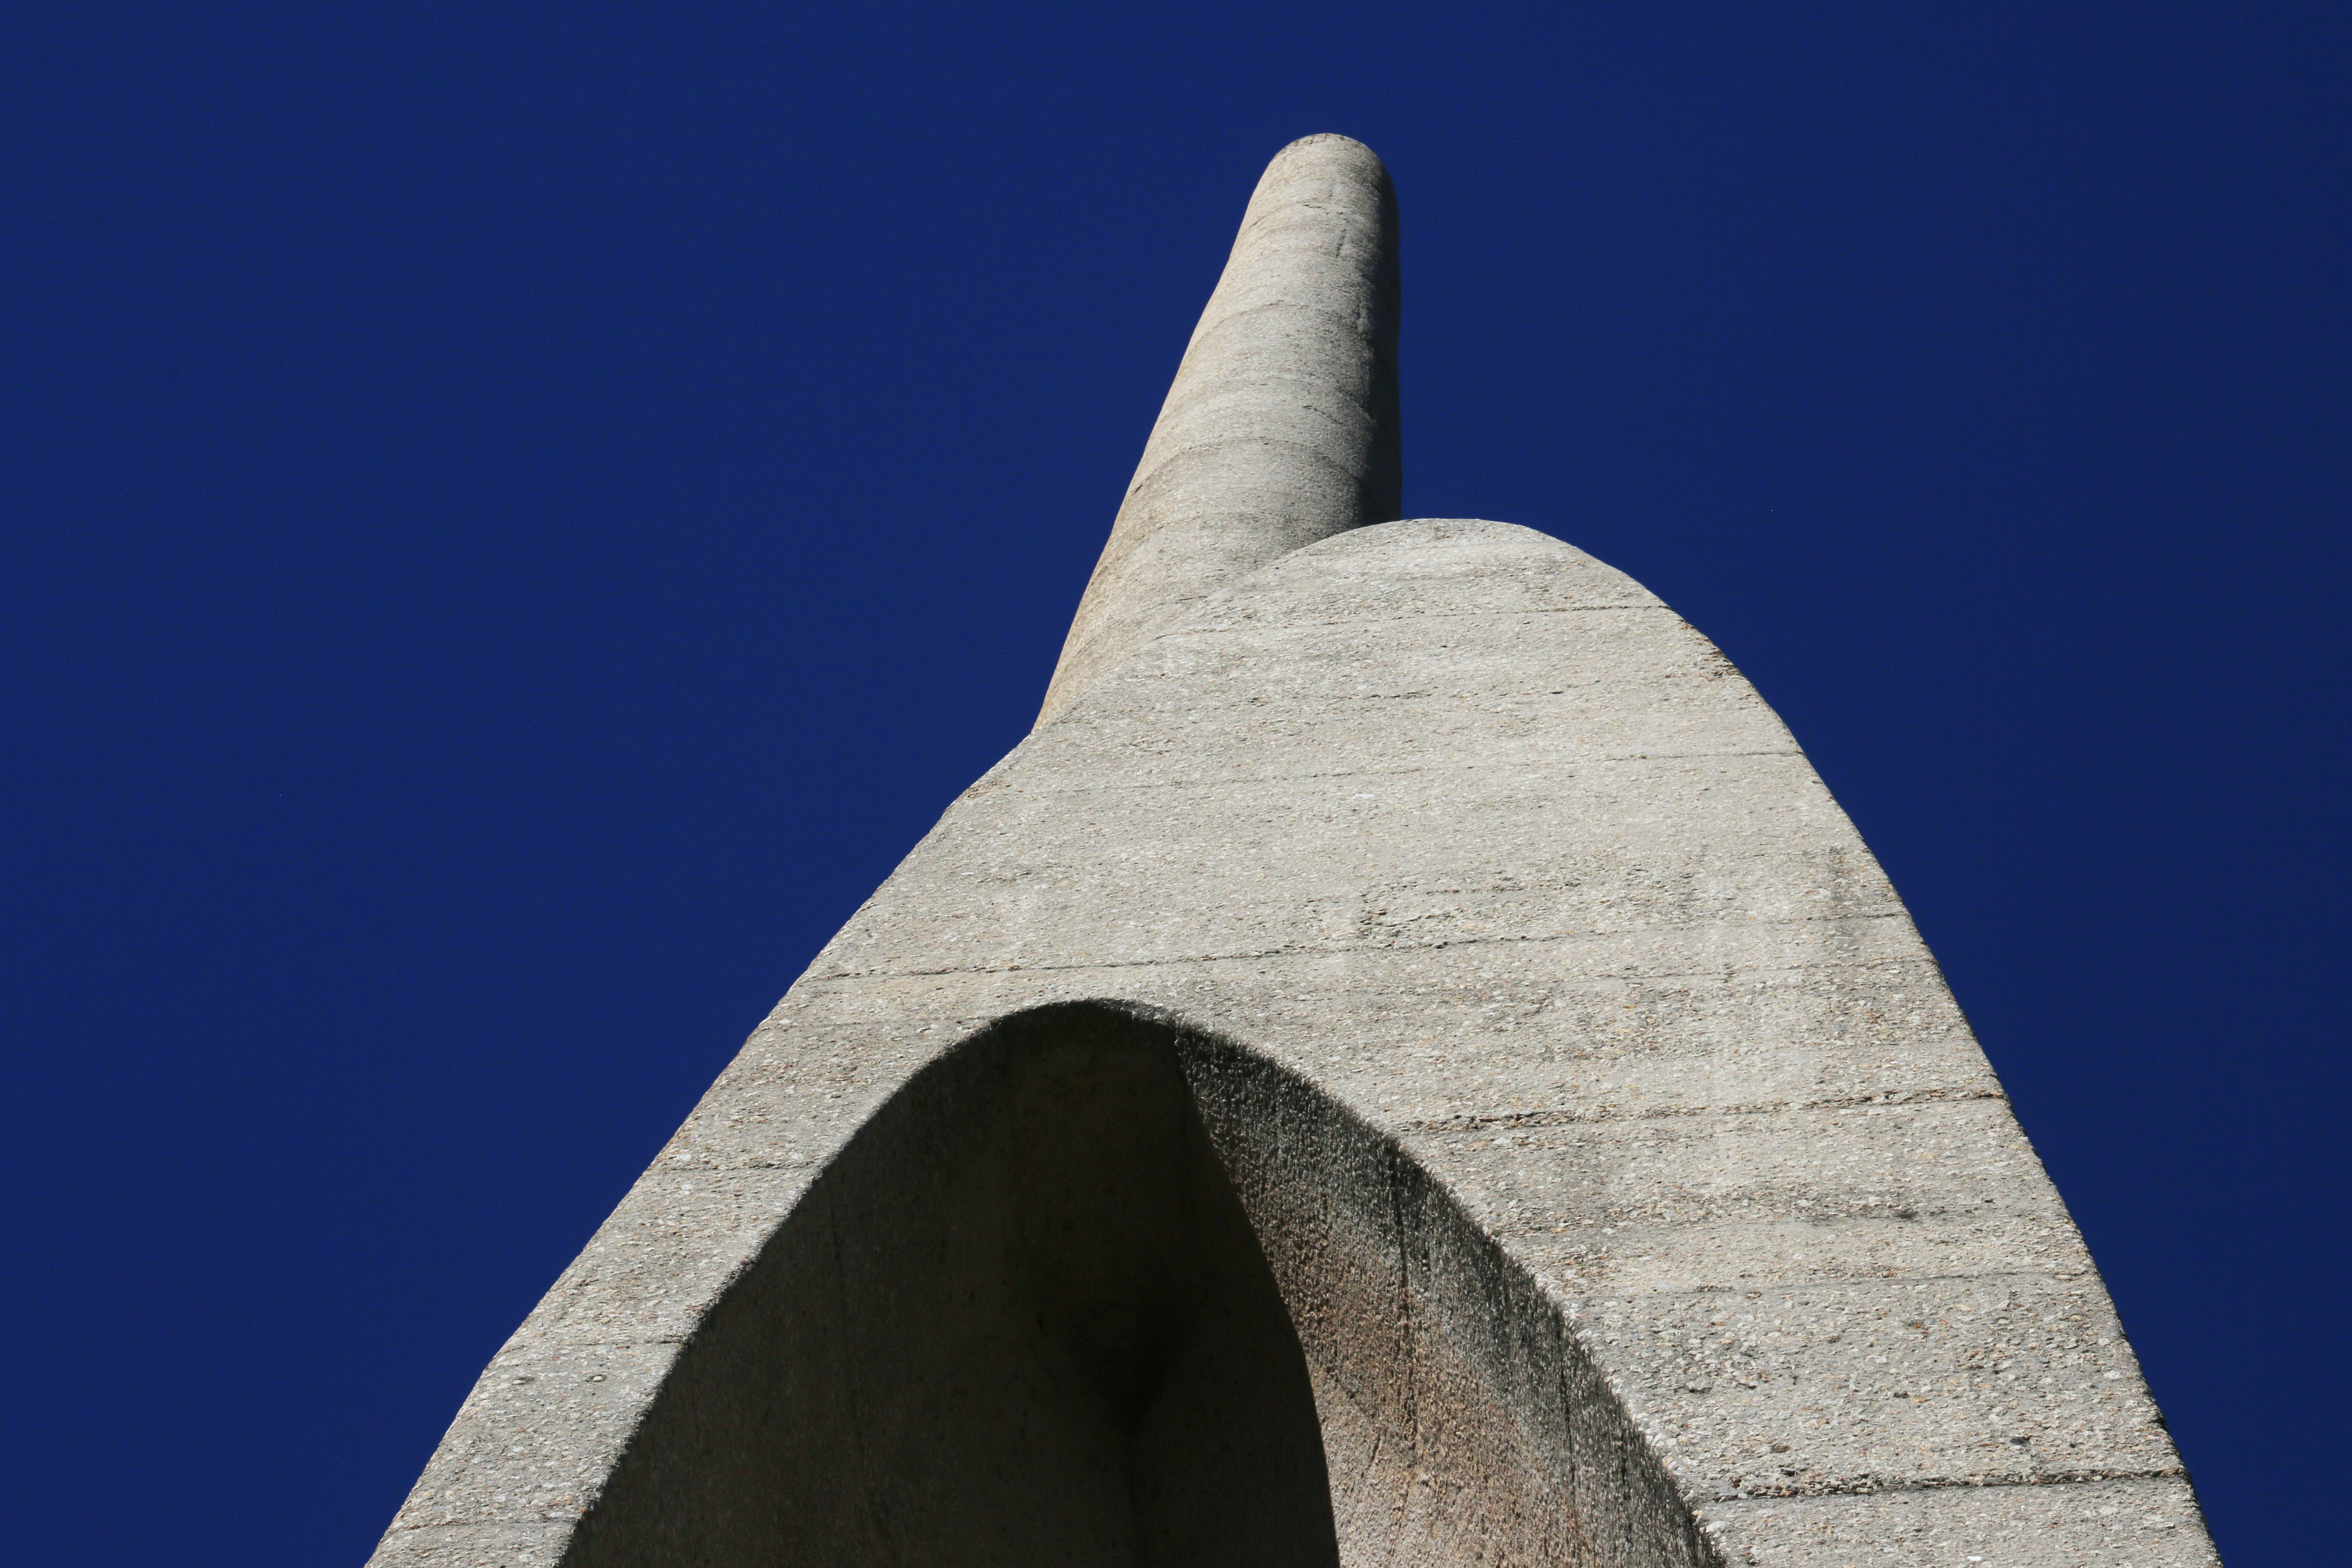 Low Angle Photography Of Building Free Stock Photo: Low Angle Photography Of Grey Concrete Building · Free